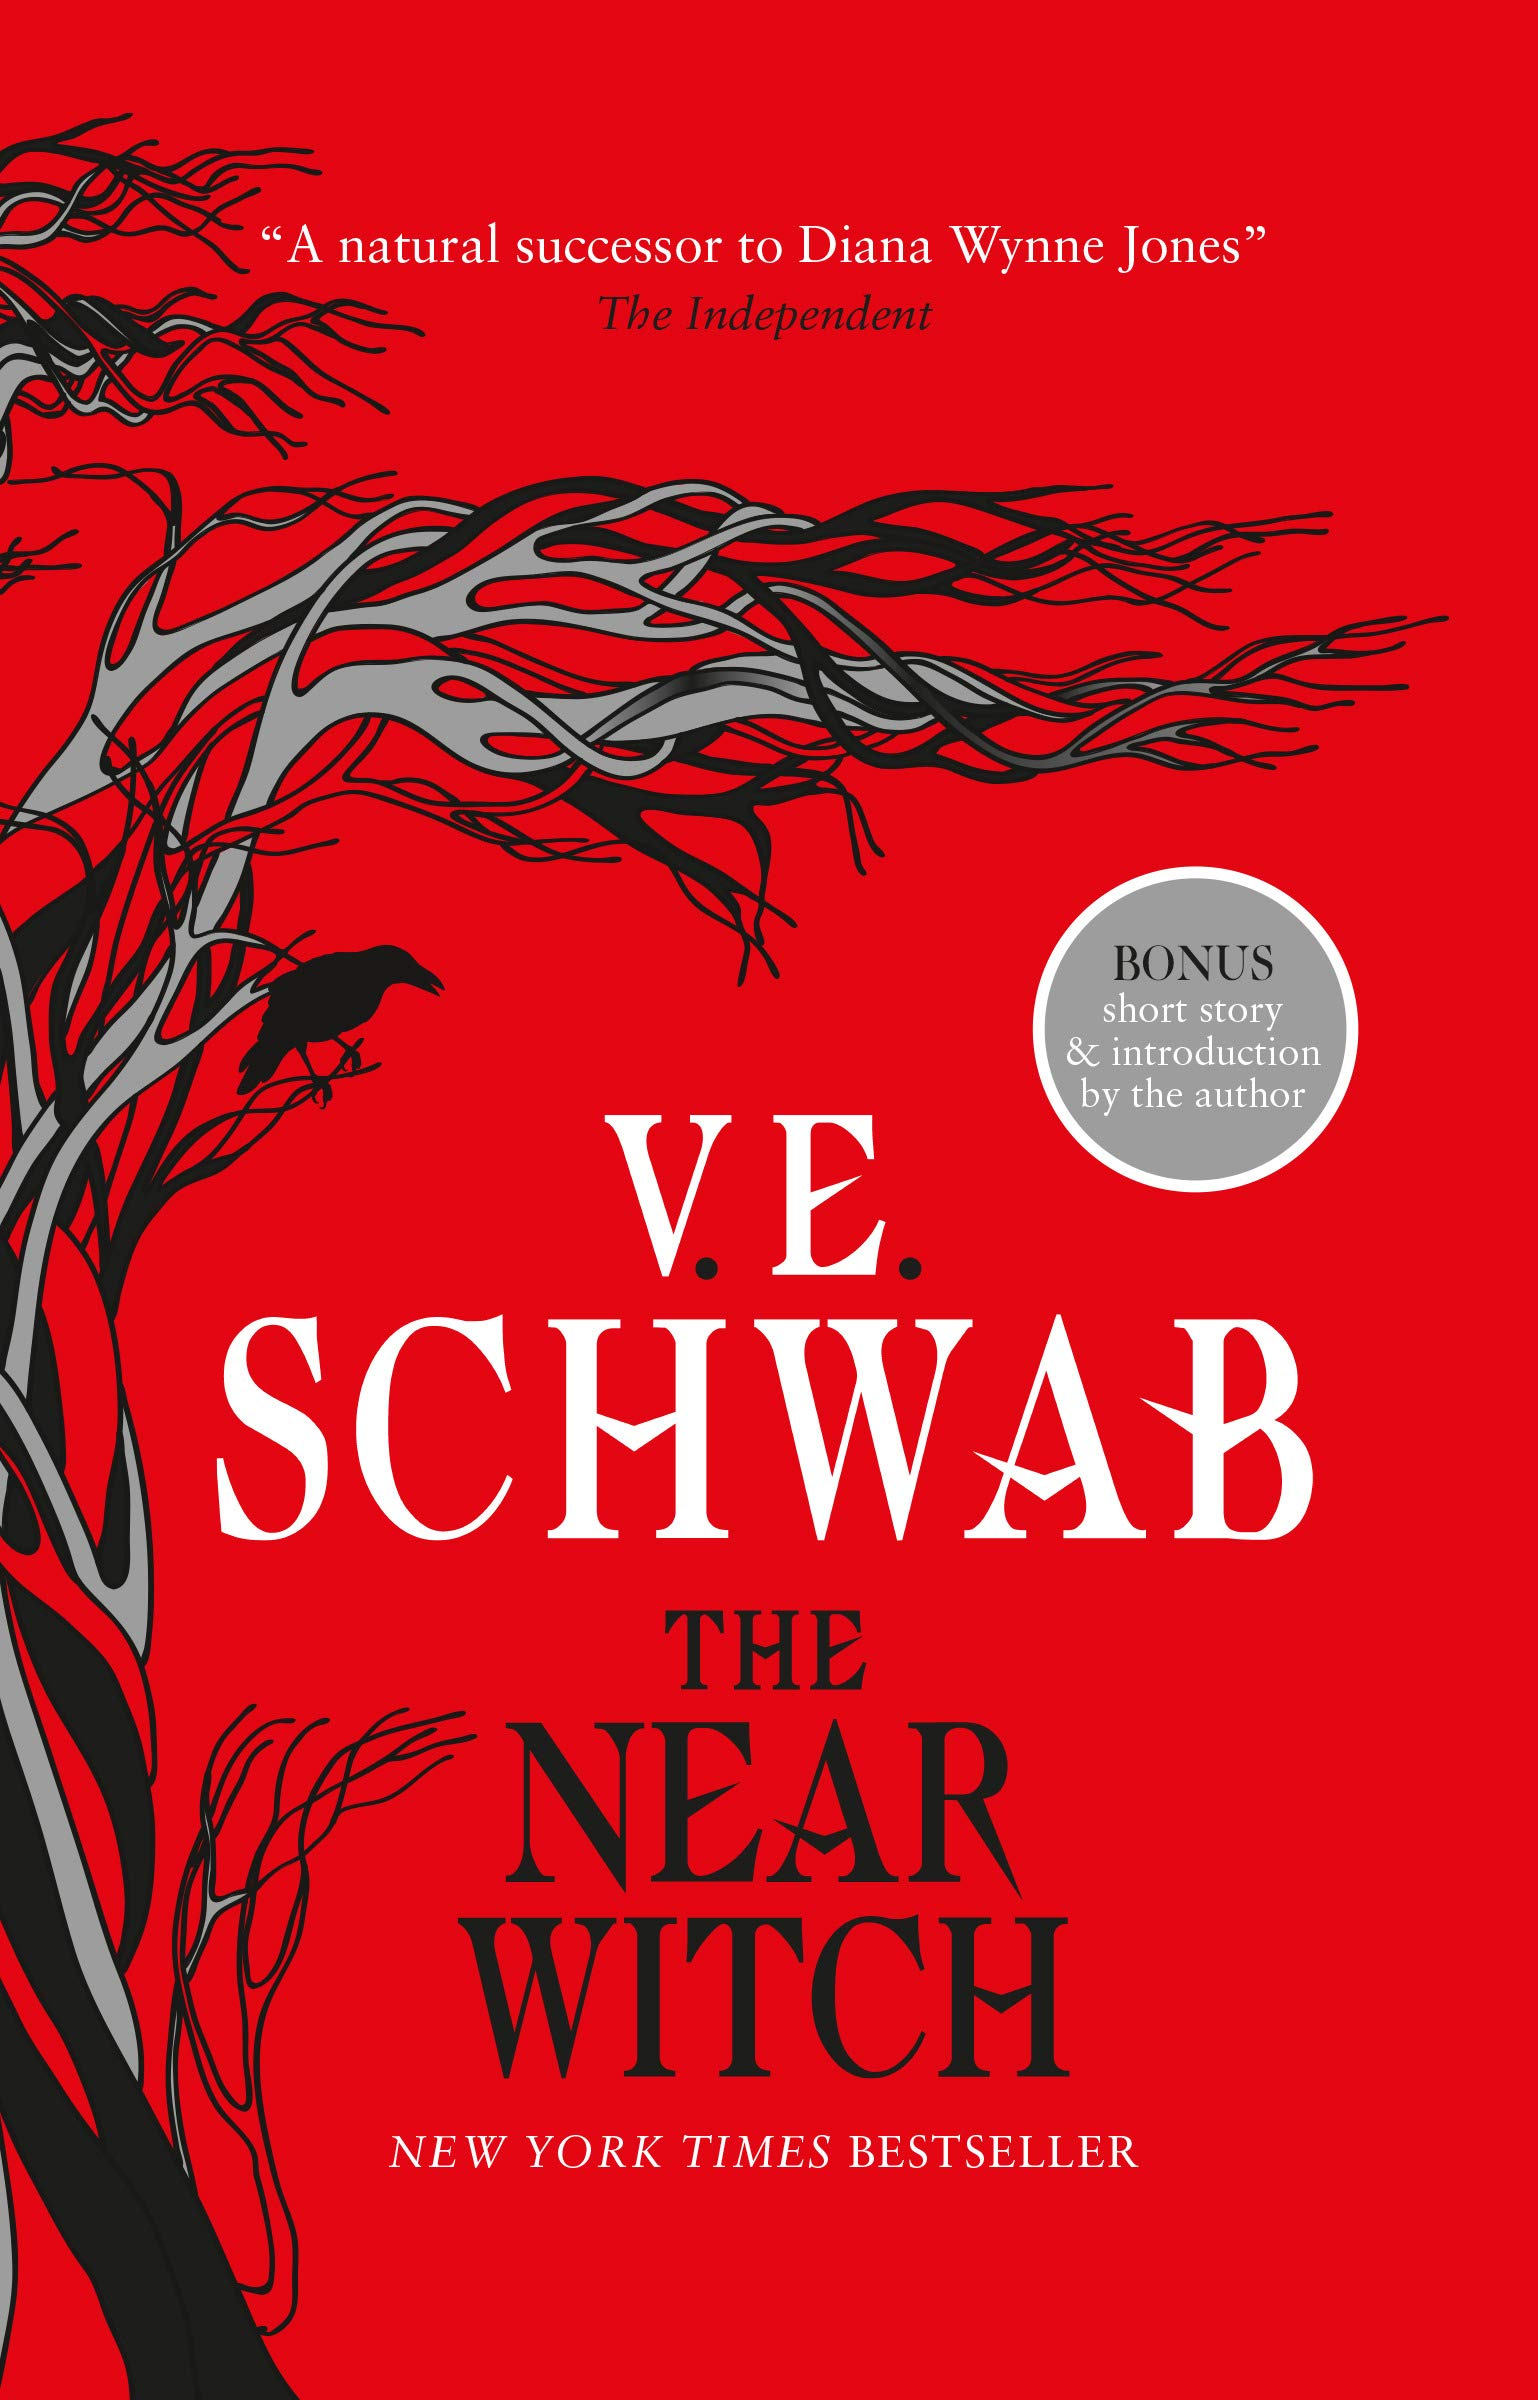 Amazon.com: The Near Witch (9781789091144): V. E. Schwab: Books